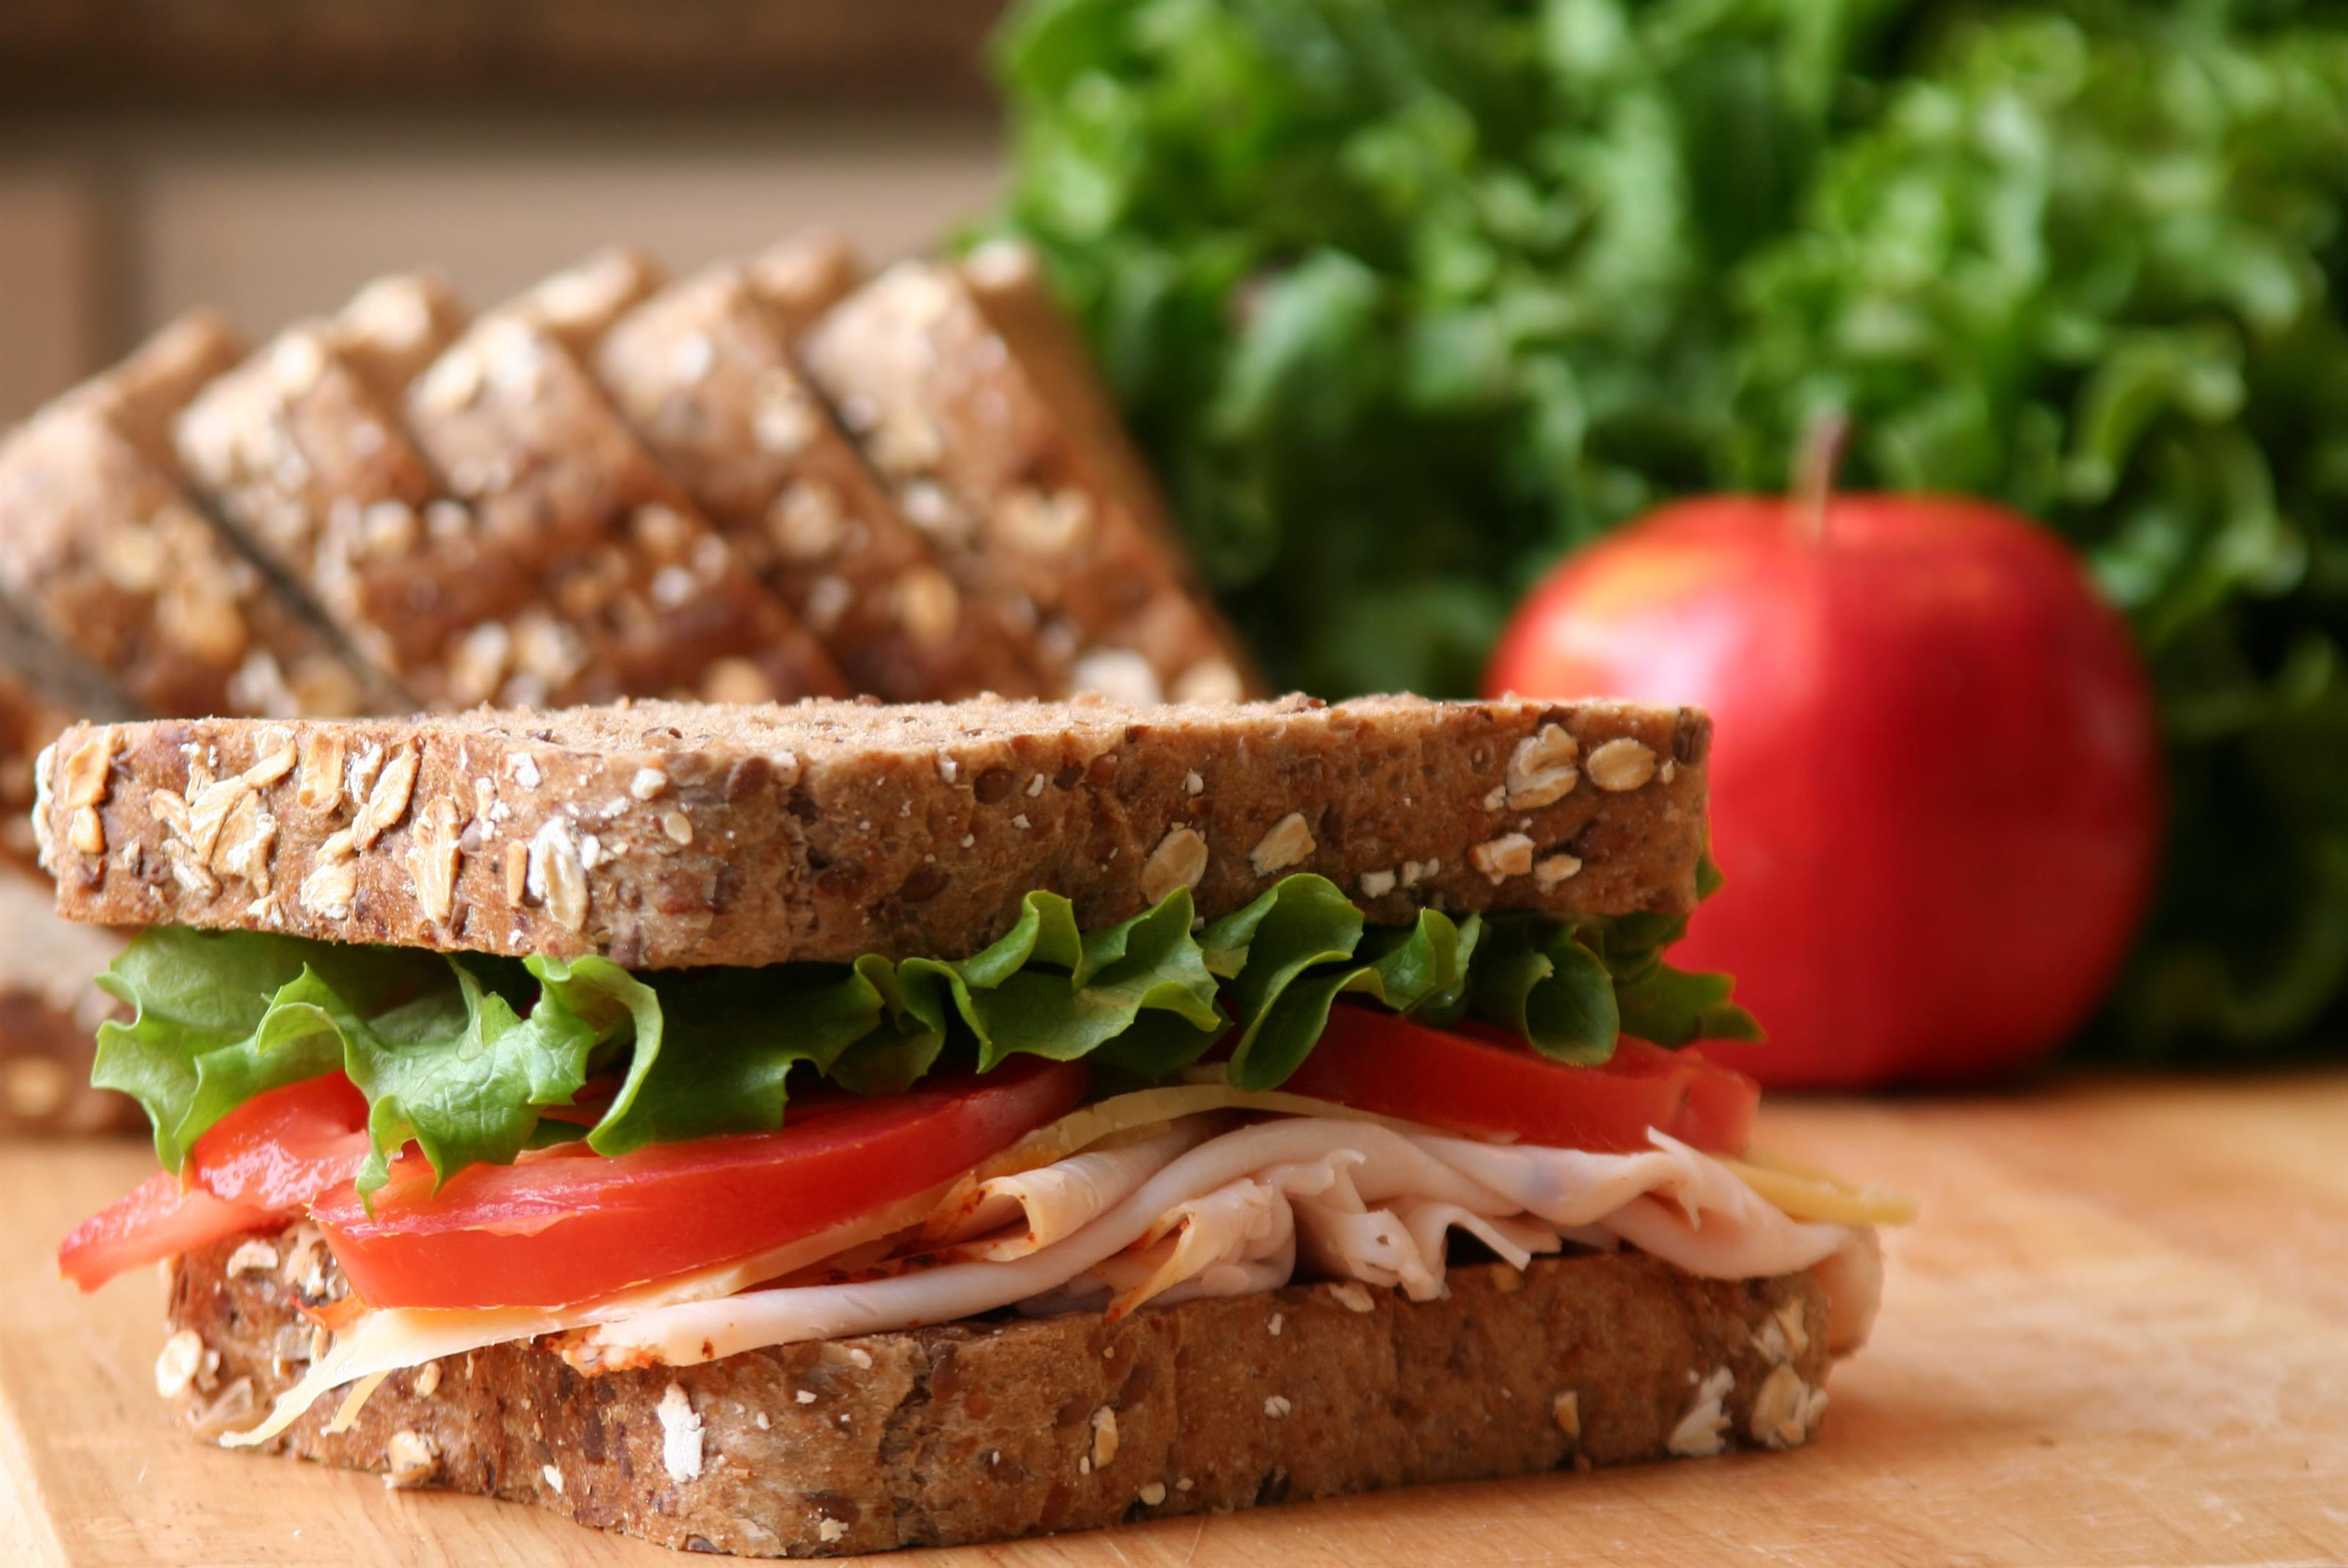 Turkey sandwich on whole wheat bread with lettuce and tomato